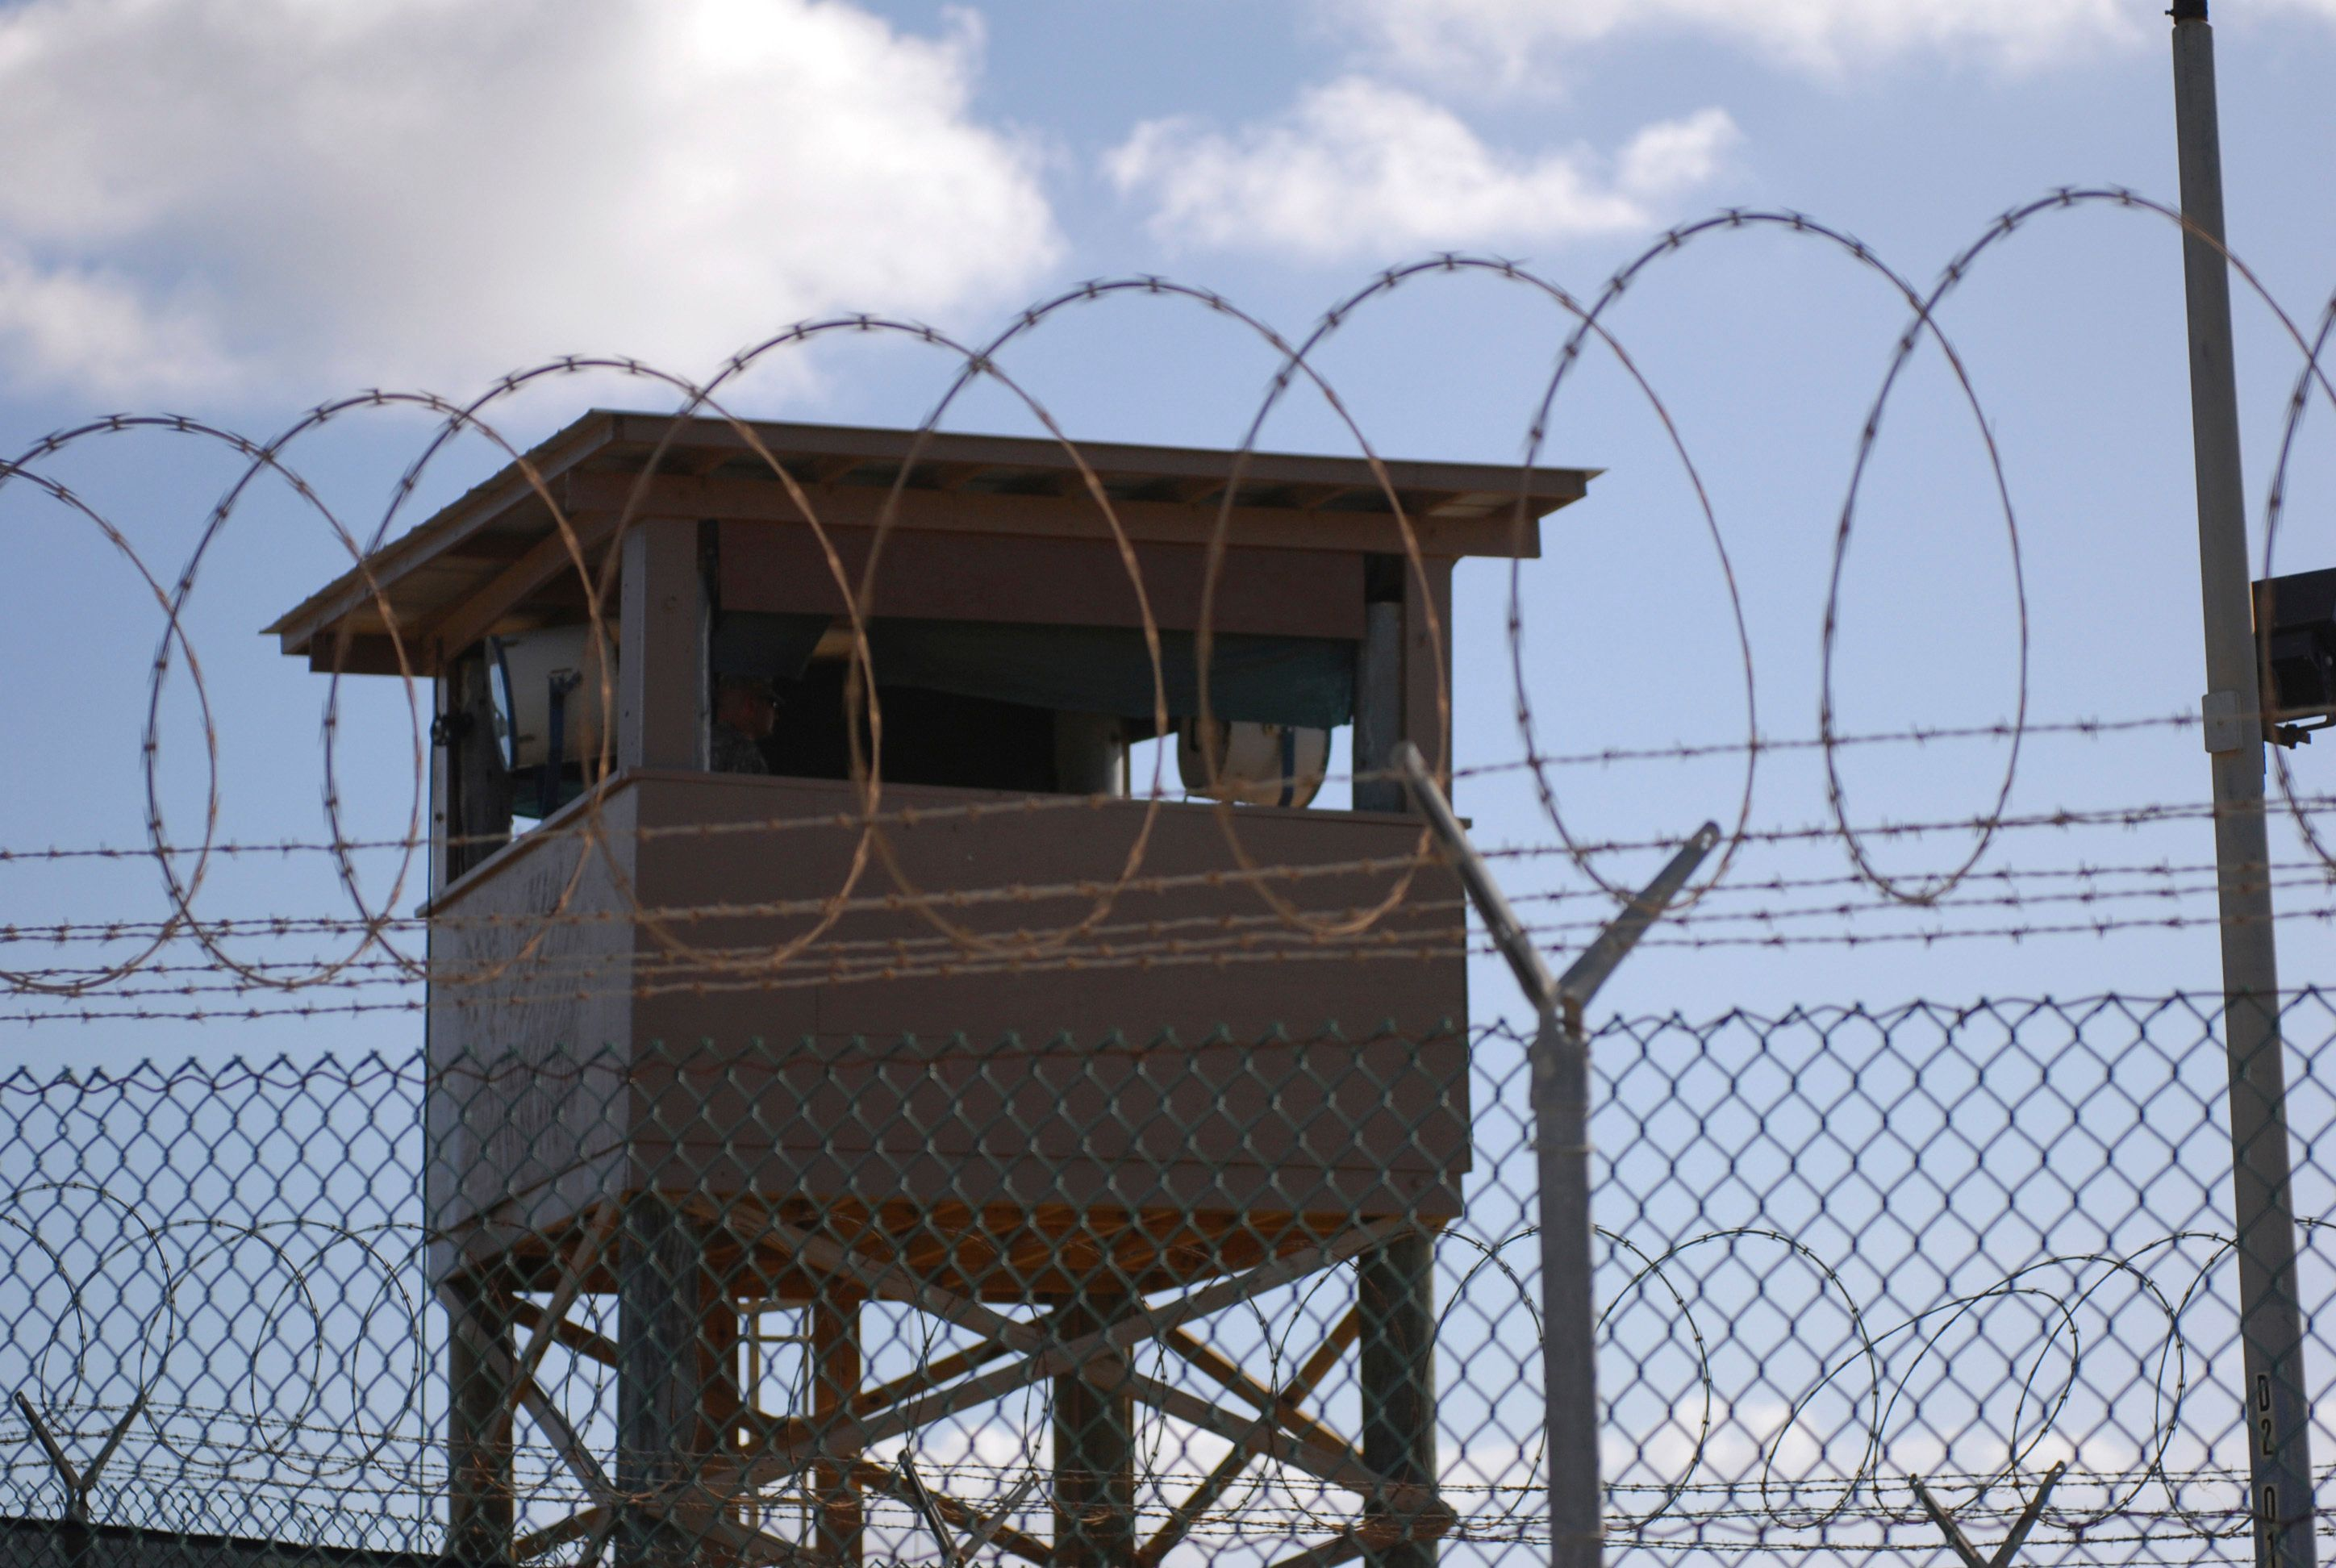 USA carries out first prisoner transfer from Guantanamo under Trump